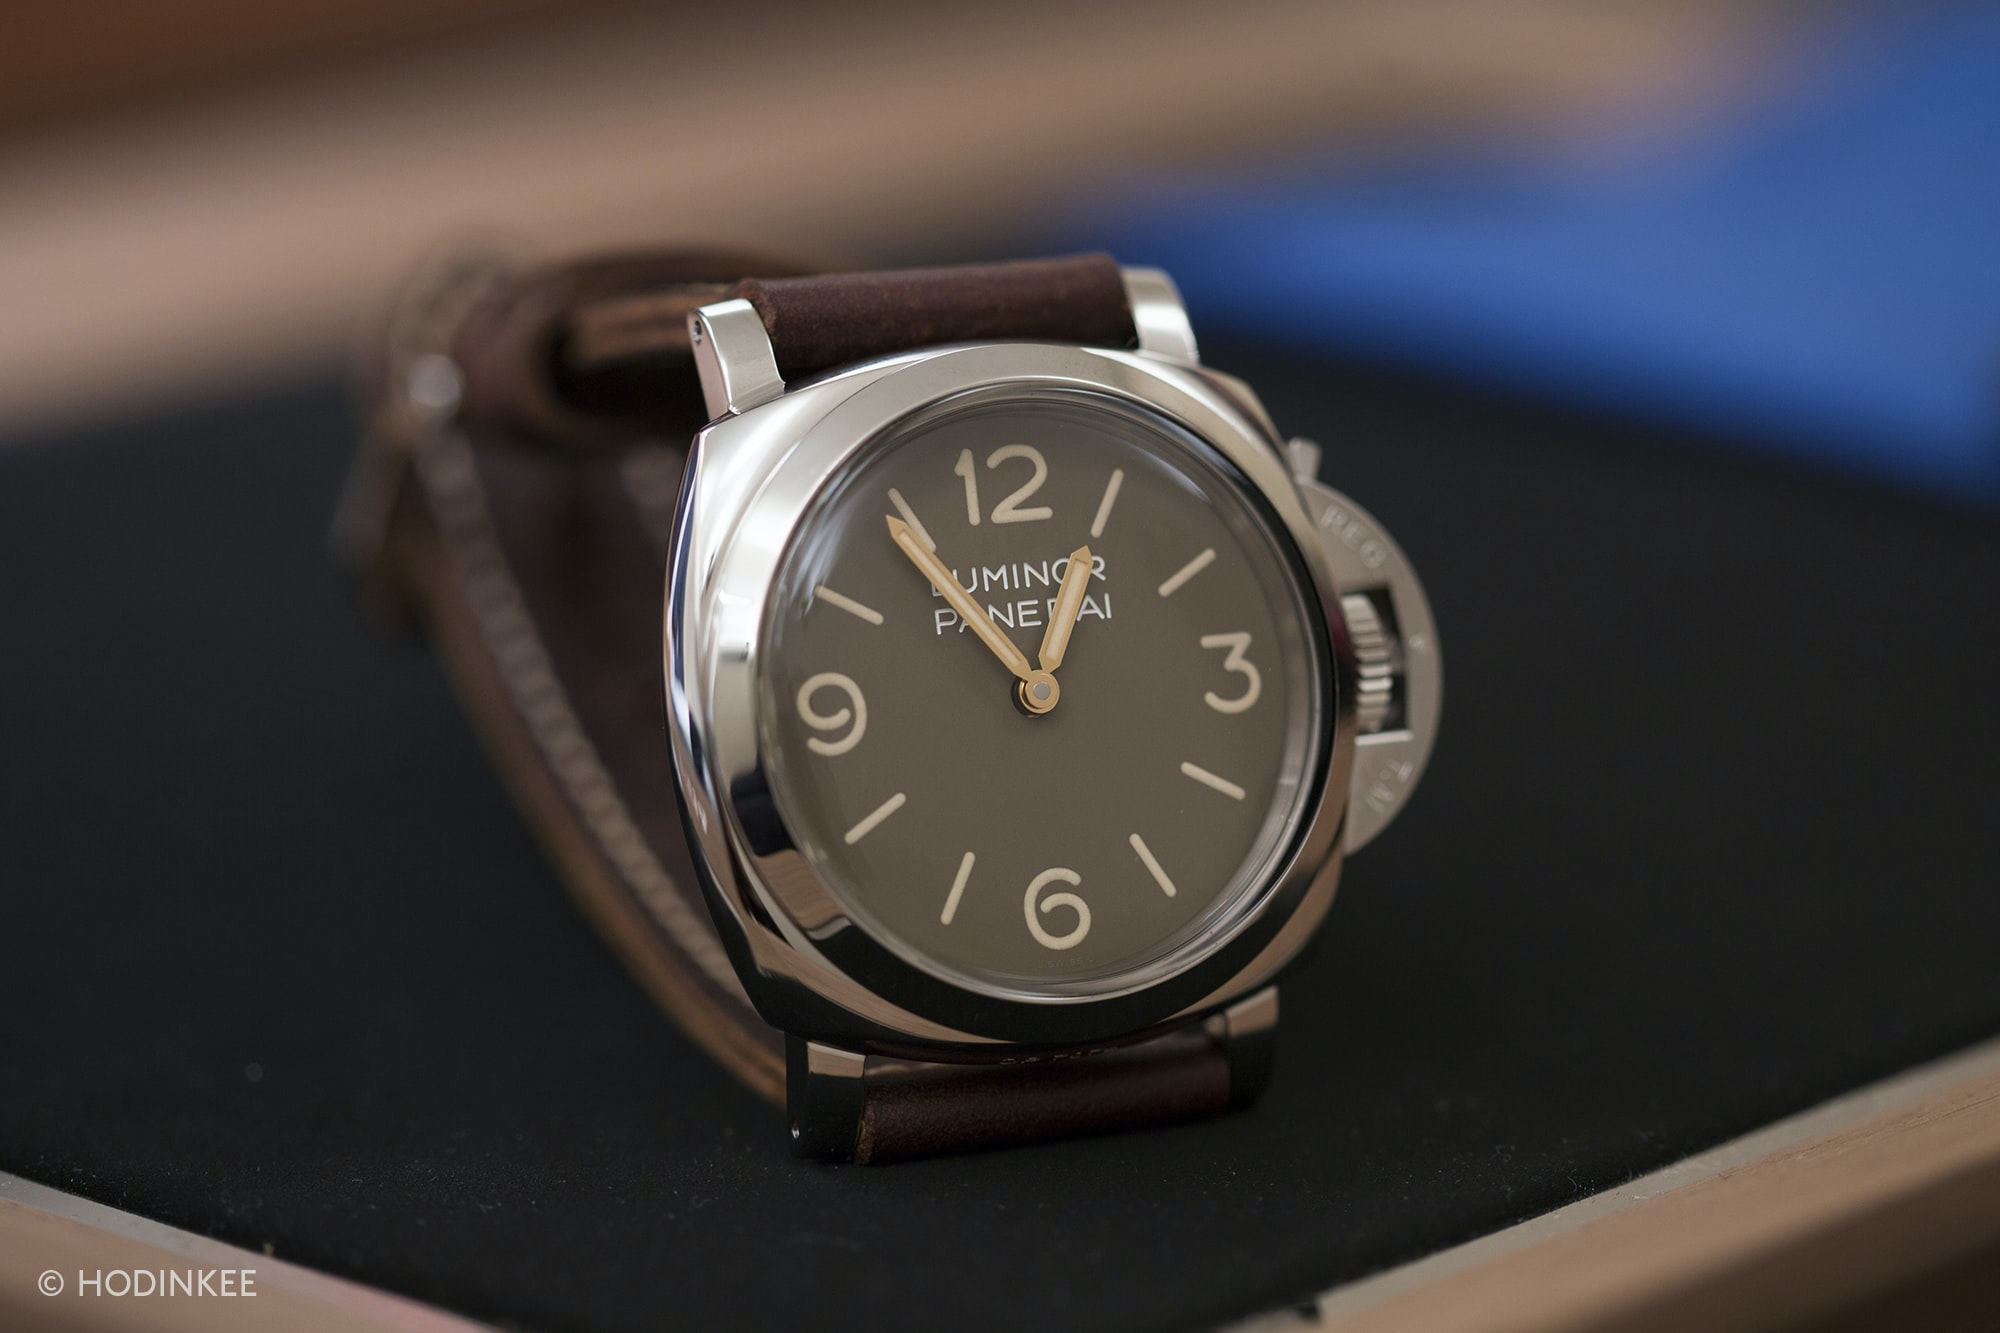 Hands-On: The Panerai Radiomir 1940 3 Days PAM 662 And Luminor 1950 PAM 663 Hands-On: The Panerai Radiomir 1940 3 Days PAM 662 And Luminor 1950 PAM 663 Panerai Luminor 1950 PAM 663